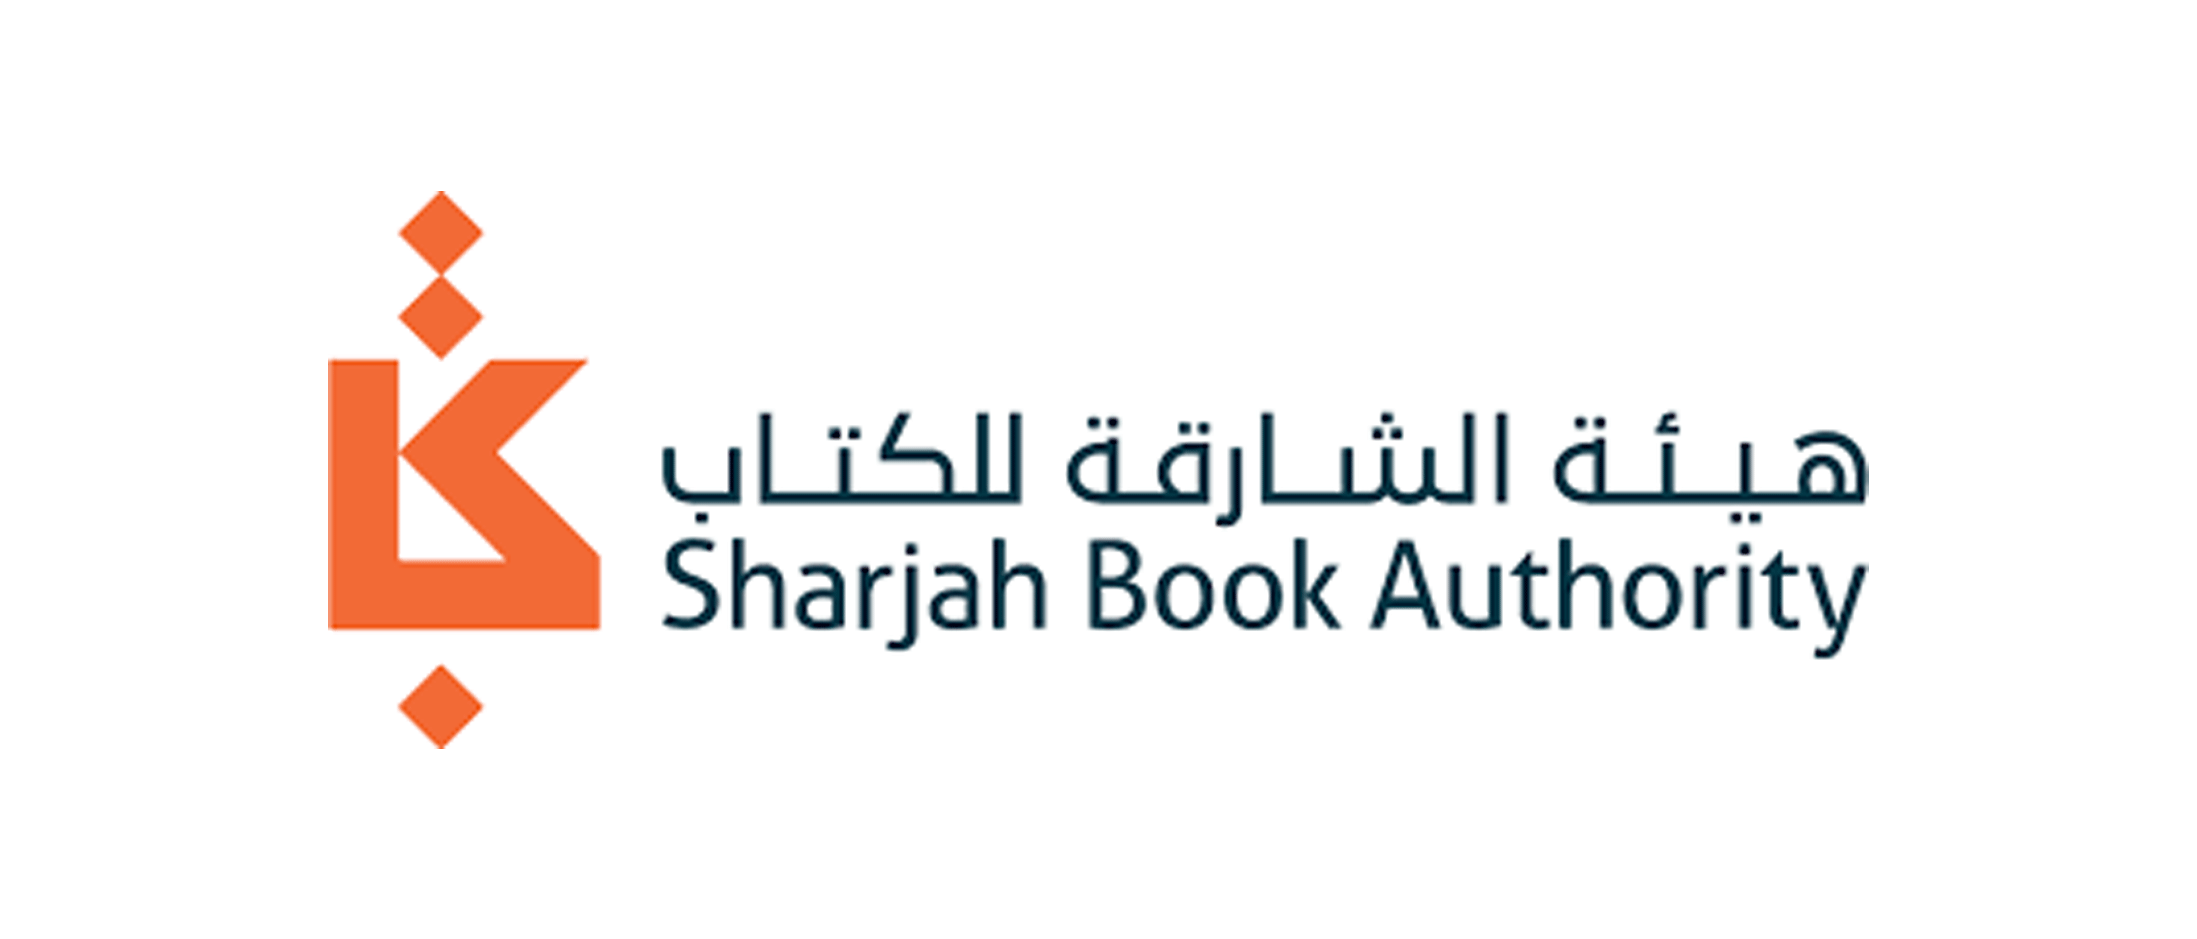 10th Publishers Conference calls for stringent regulations to combat book piracy